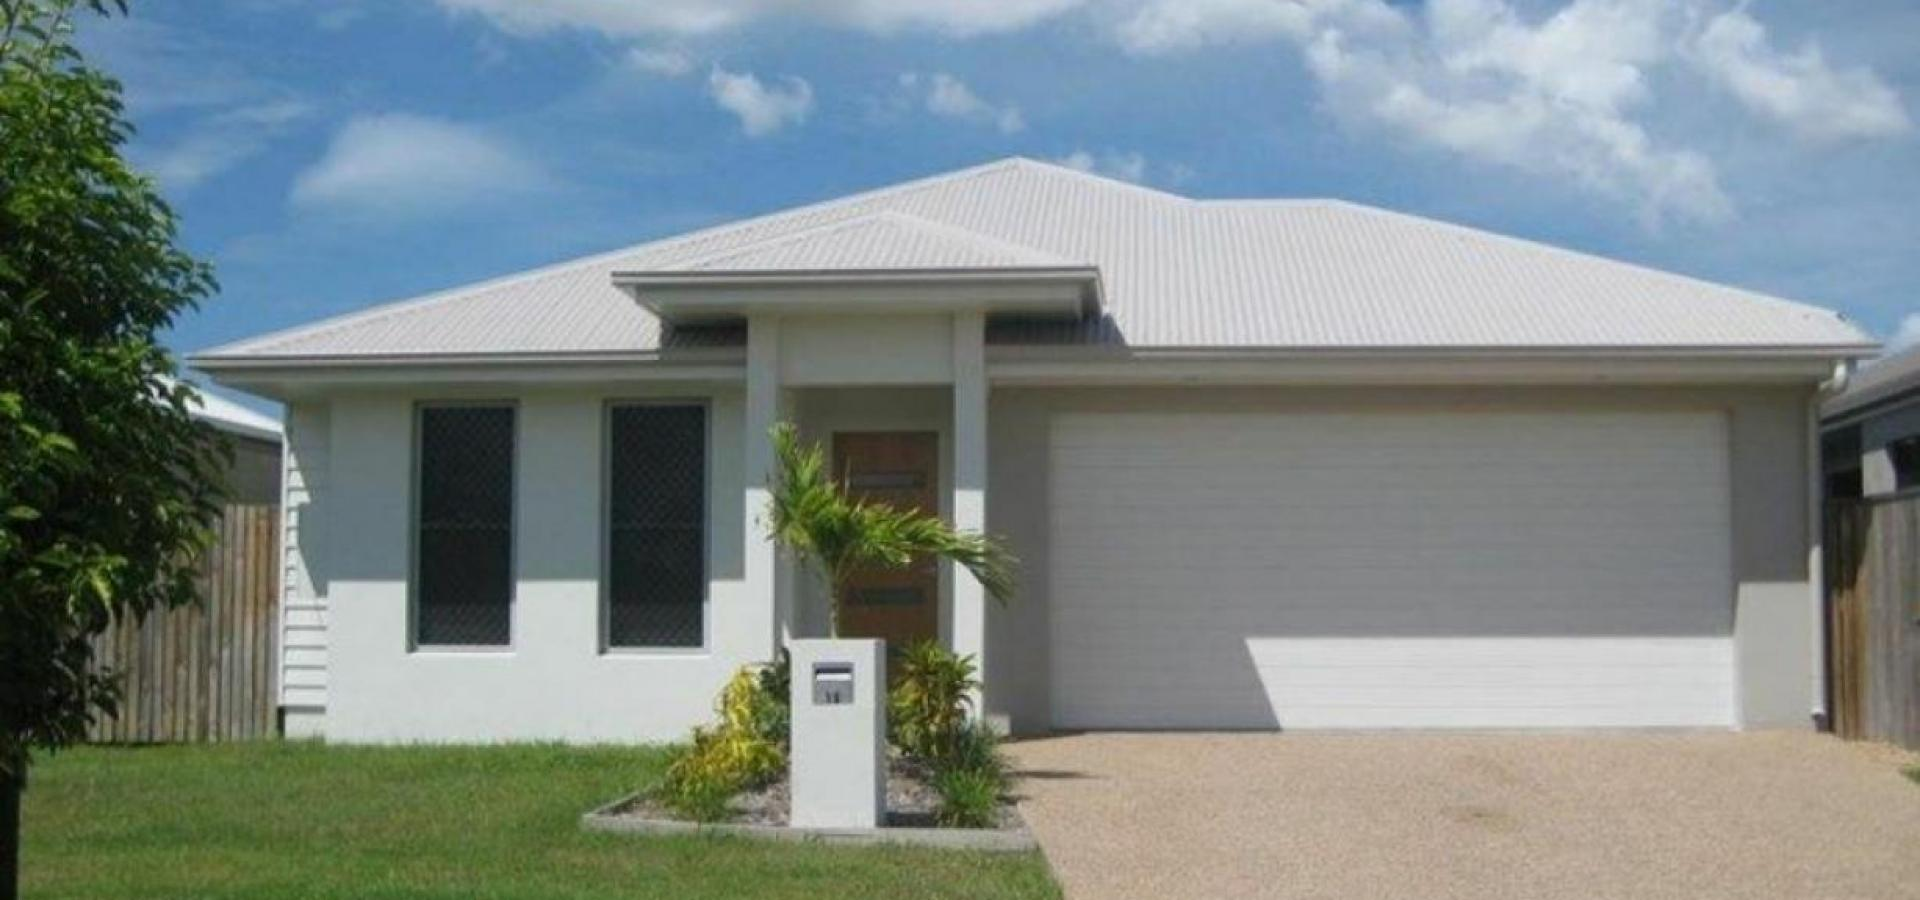 Wanting 4 Bedroom 2 Bathroom 2 Garage in Quality Location? Check!